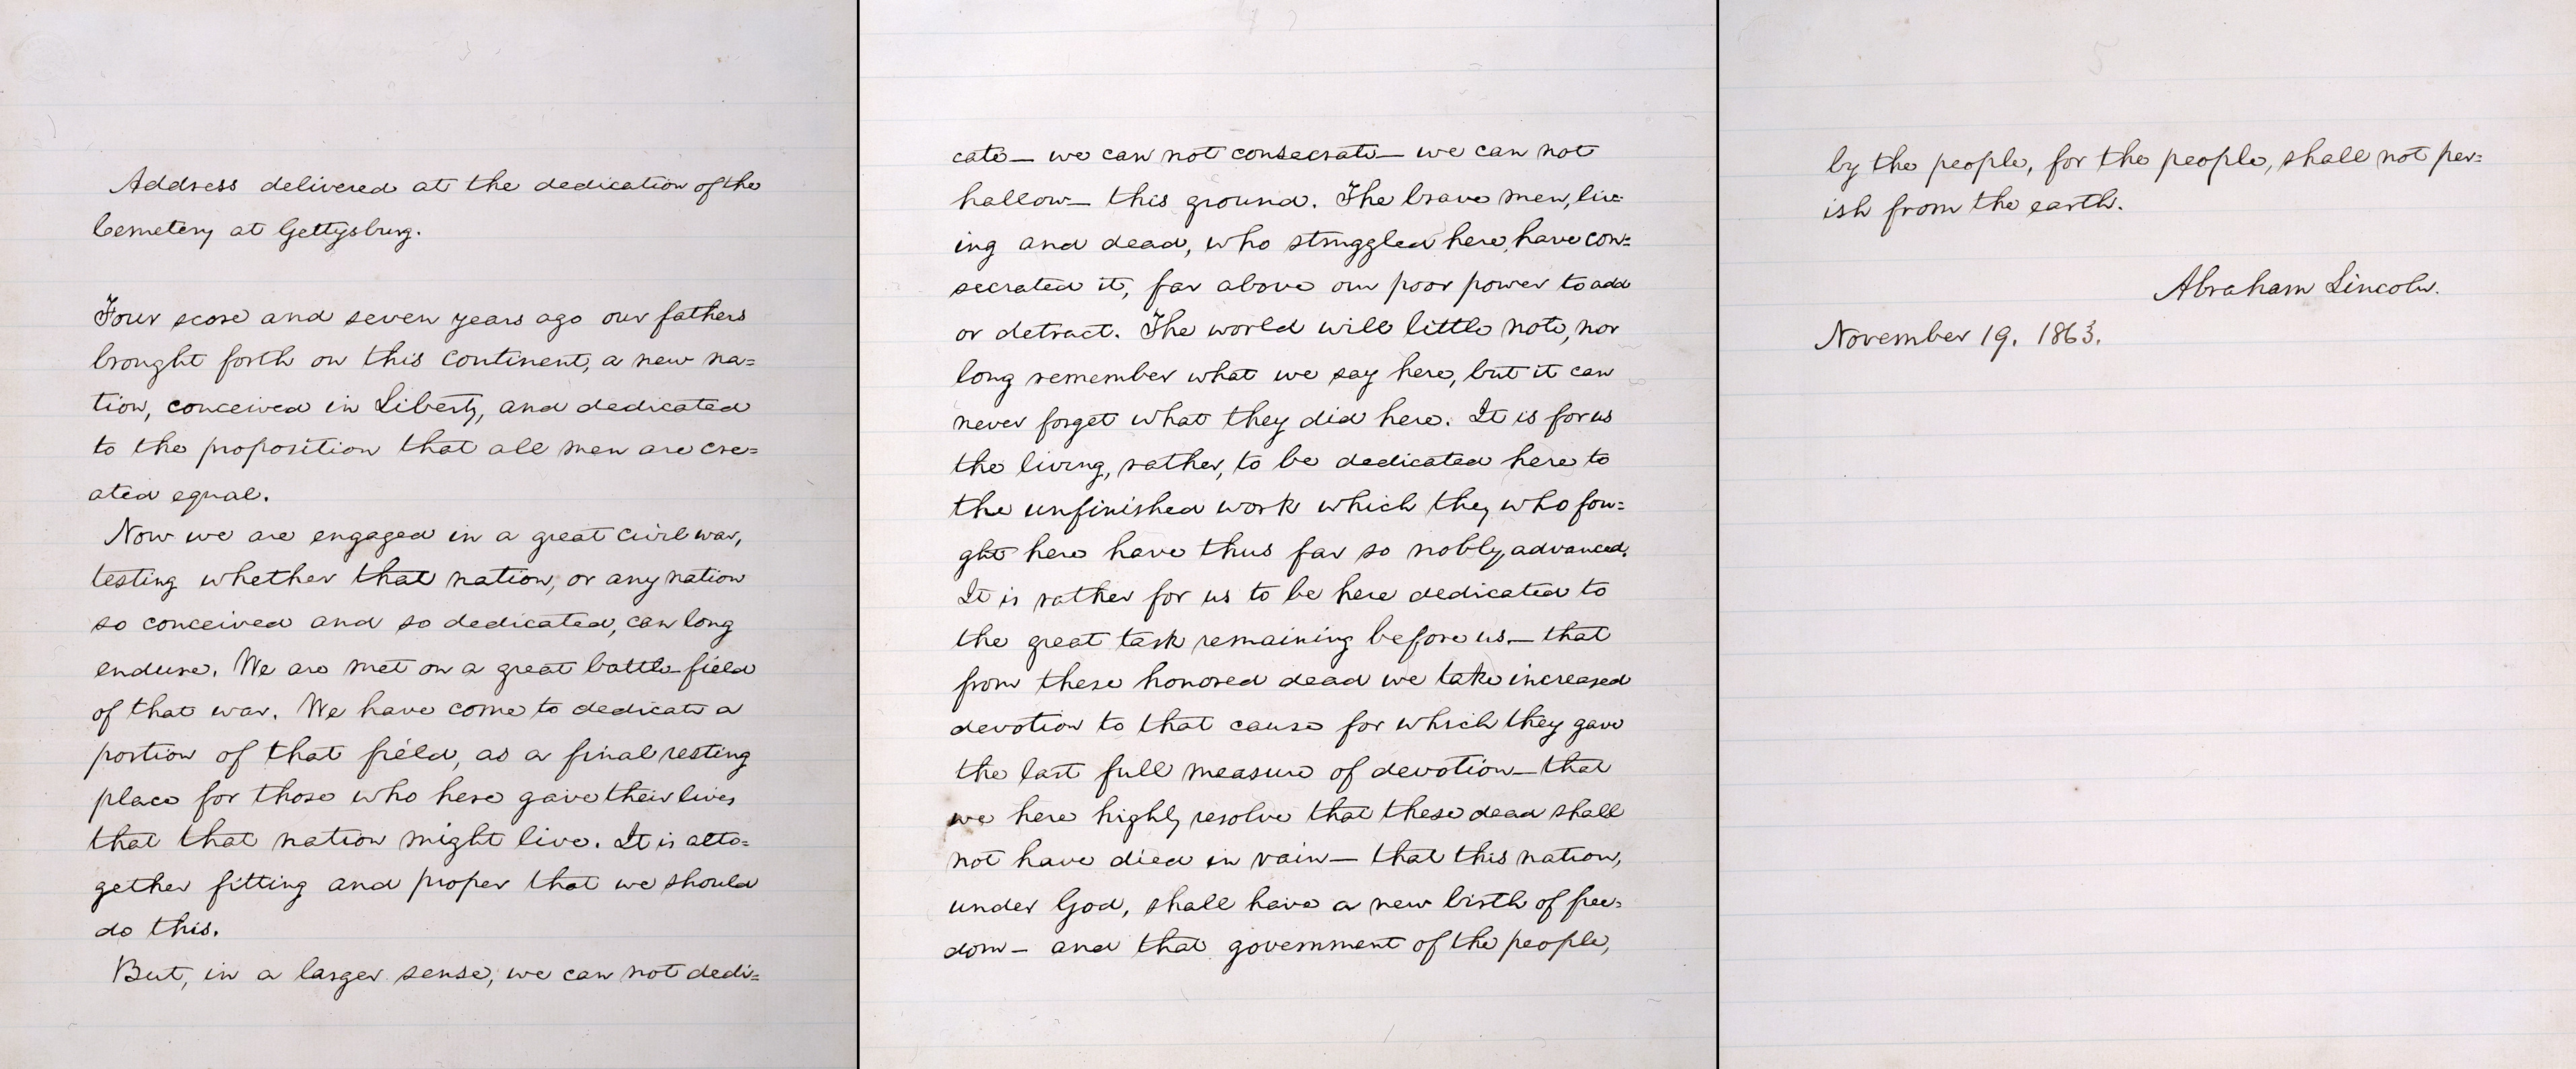 Lincoln's fifth and final draft of the Gettysburg Address, written in March 1864 as a favor for a friend to help raise funds for the Union cause. Because of the apparent care in its preparation, and in part because Lincoln provided a title and signed and dated this copy, it has become the standard version of the address and the source for most facsimile reproductions of Lincoln's Gettysburg Address. It is the version that is inscribed on the South wall of the Lincoln Memorial. This copy is kept on view in the Lincoln Bedroom on the second floor of the White House. The manuscript was kept by Alexander Bliss and remained in his family until it was auctioned in 1949. Oscar Cintas, a former Cuban ambassador to Washington, purchased the document for $54,000—then a record price paid for a document at public auction. Cintas, who died in 1957, left the address to the people of the United States with the understanding that it be placed in the White House's collections.